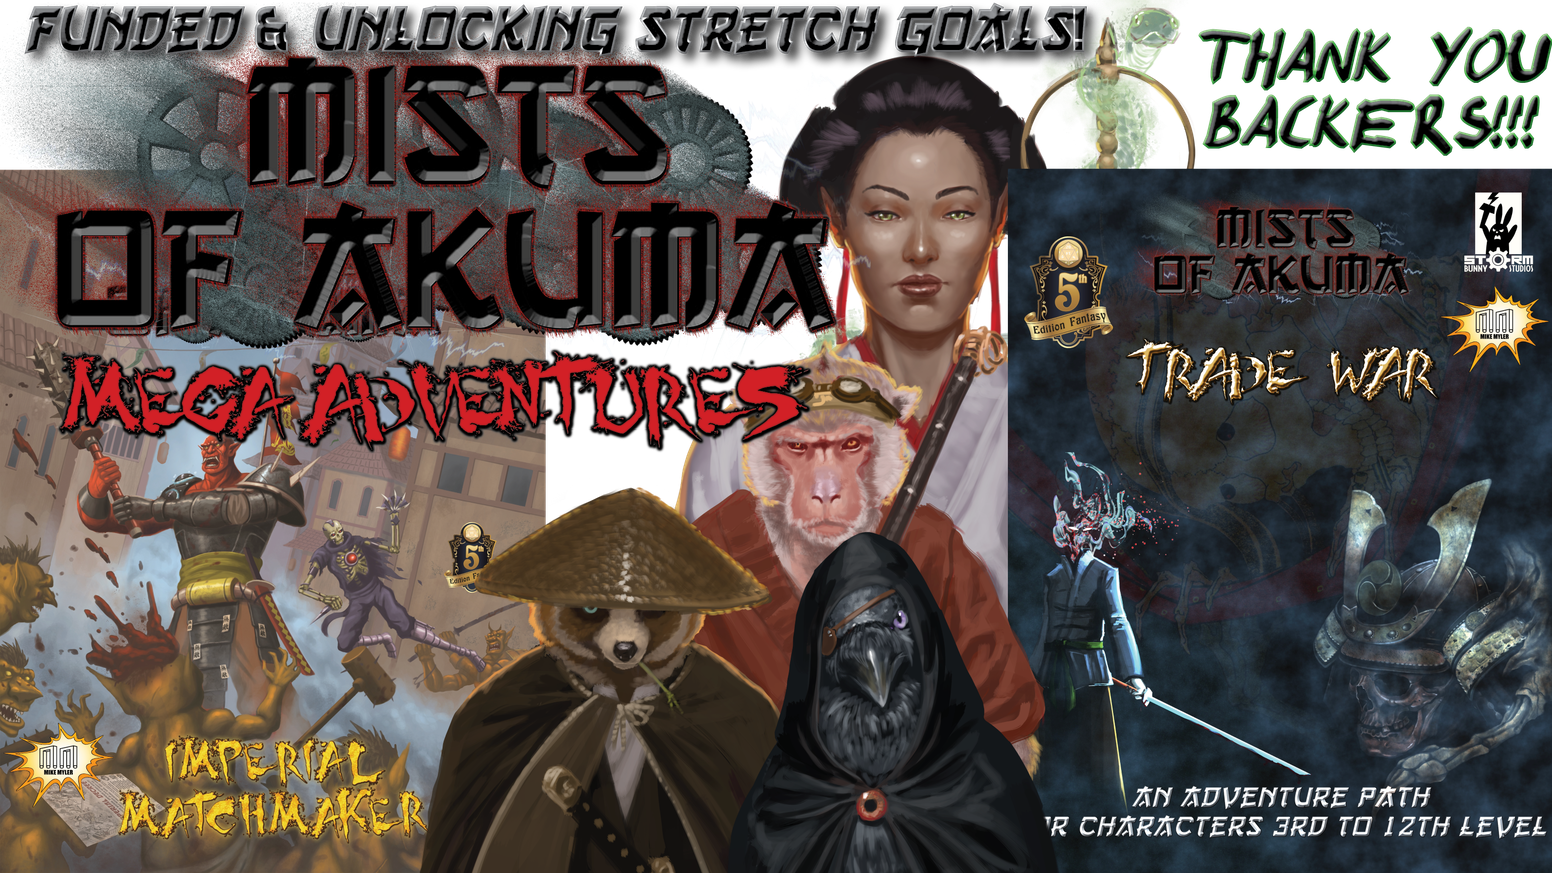 2 hardcovers in Mists of Akuma: the Trade War AP & the Imperial Matchmaker mega adventure! Thanks again to all our backers! You can get Trade War in hardcover or PDF for both 5E (https://bit.ly/2XaXQR0) and SotDL (https://bit.ly/2GzFGU1)